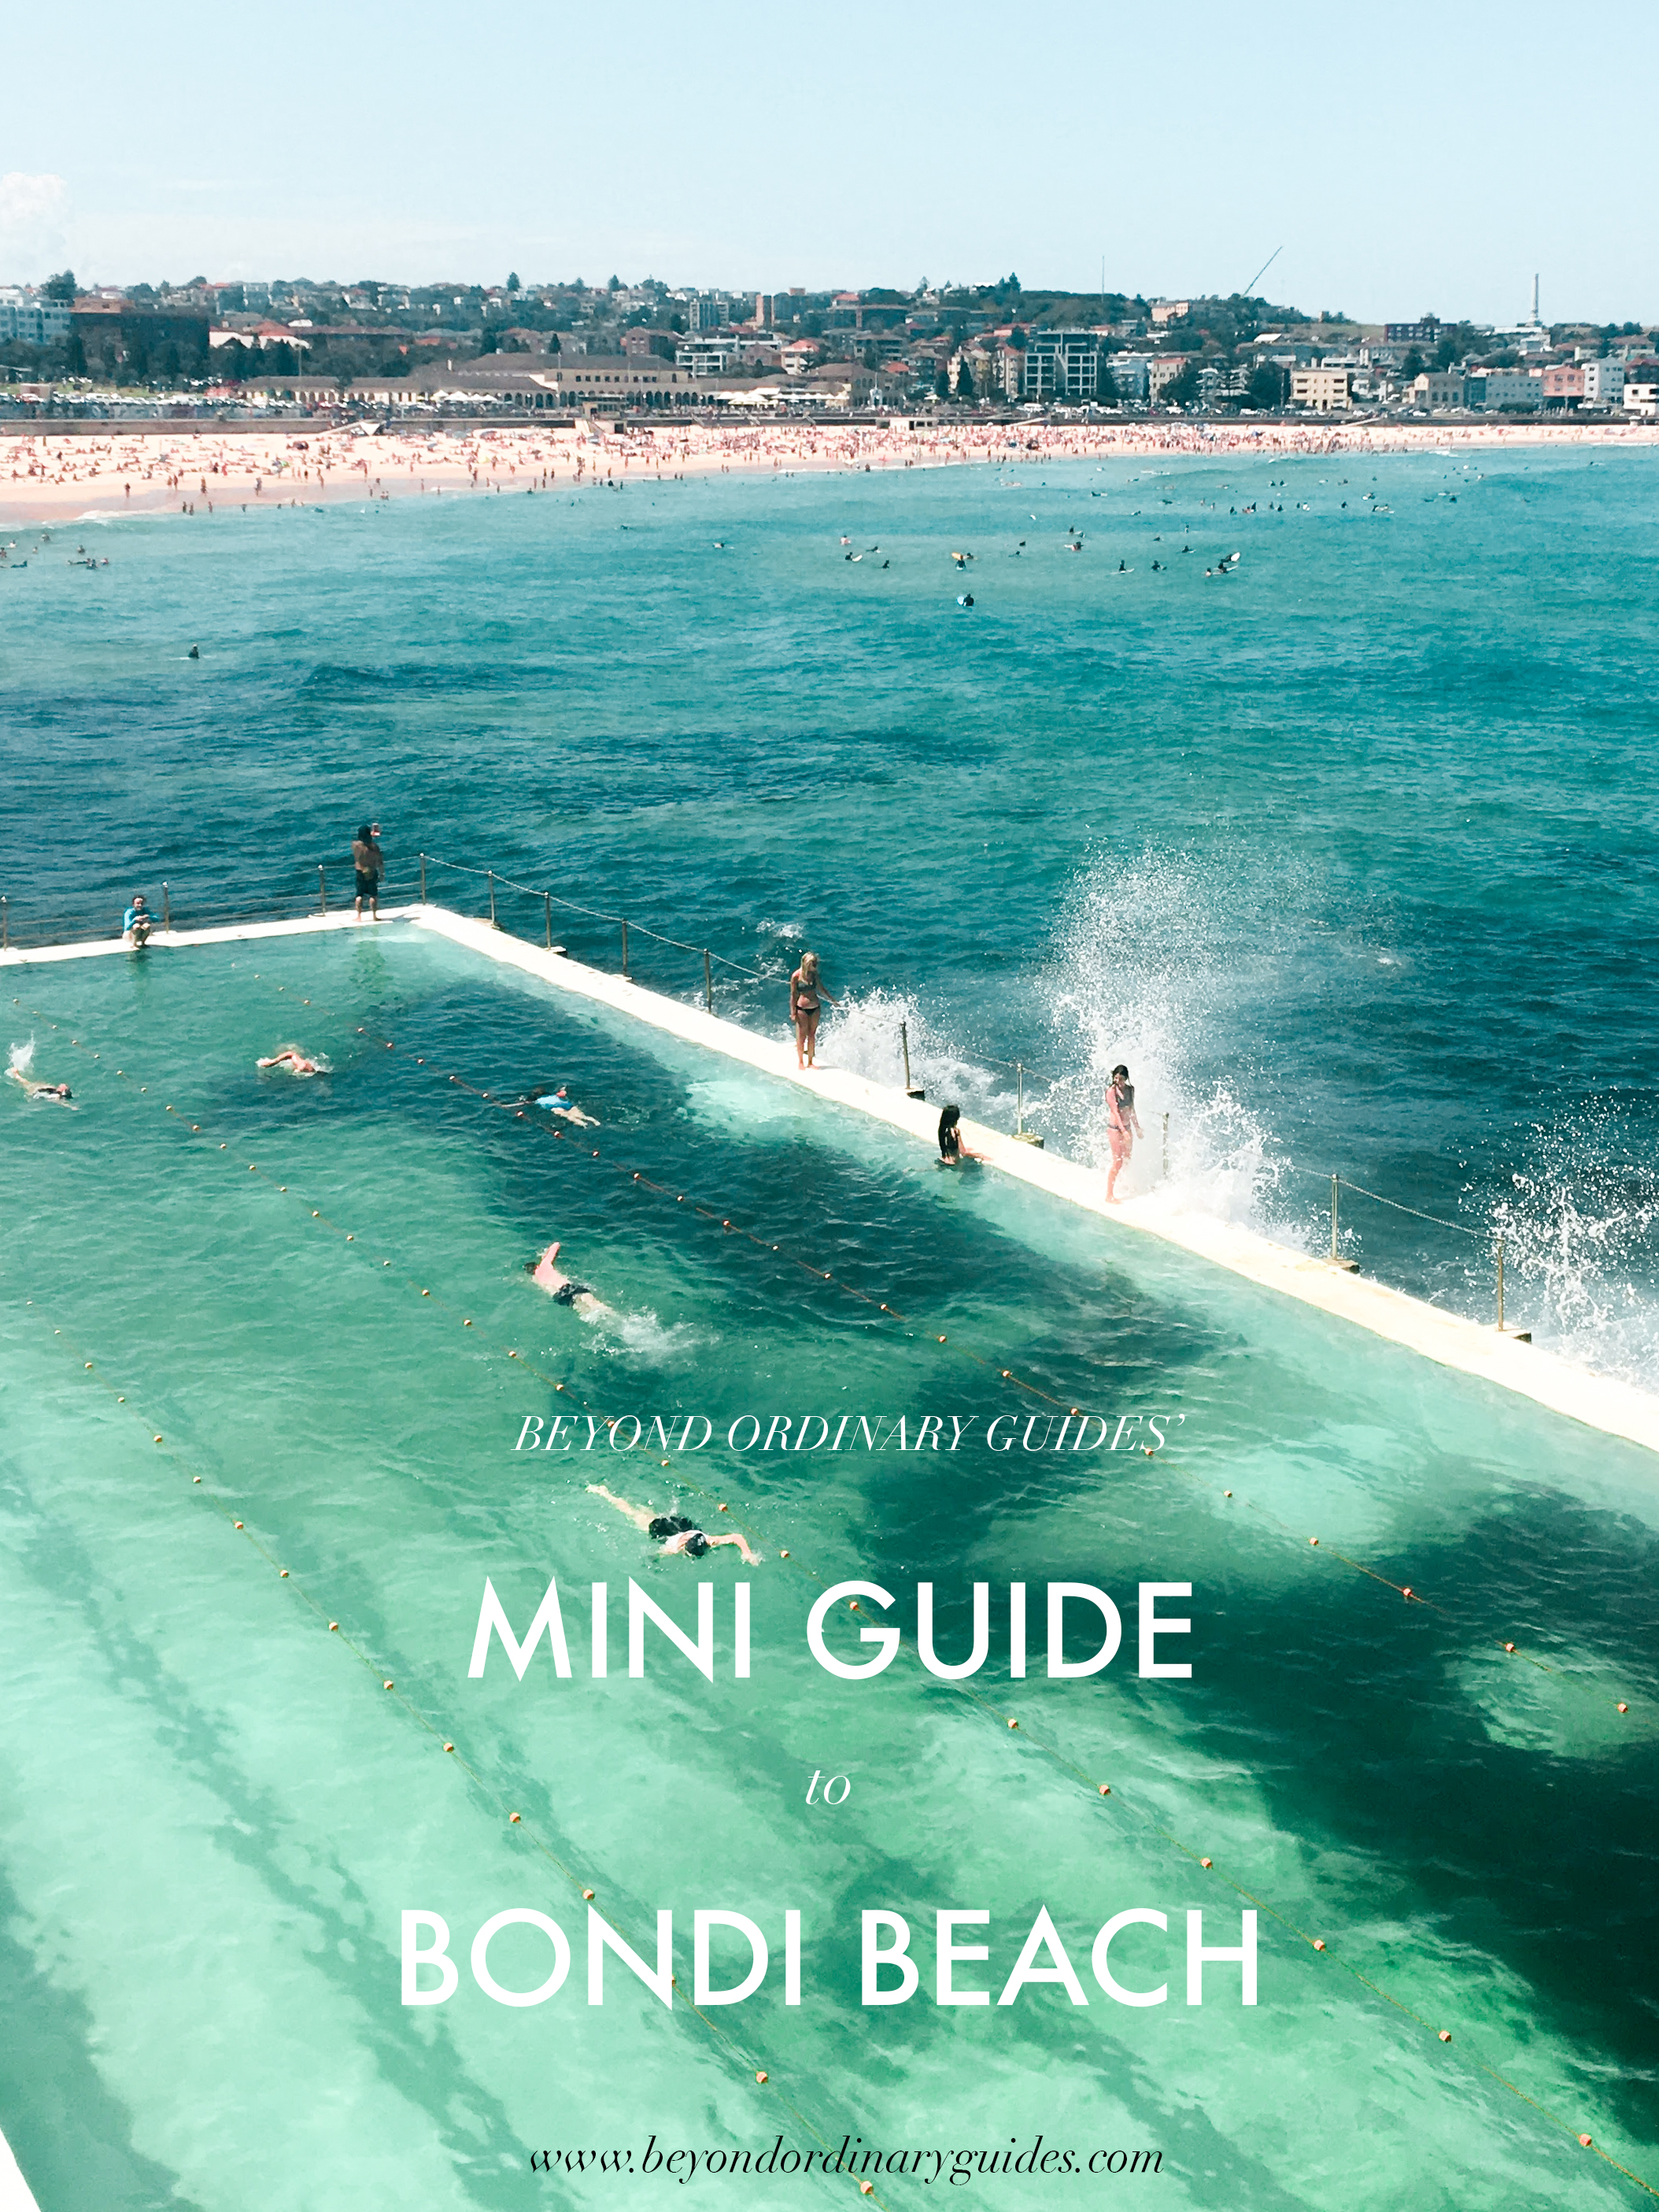 Beyond Ordinary Guides Mini Guide to Bondi Beach